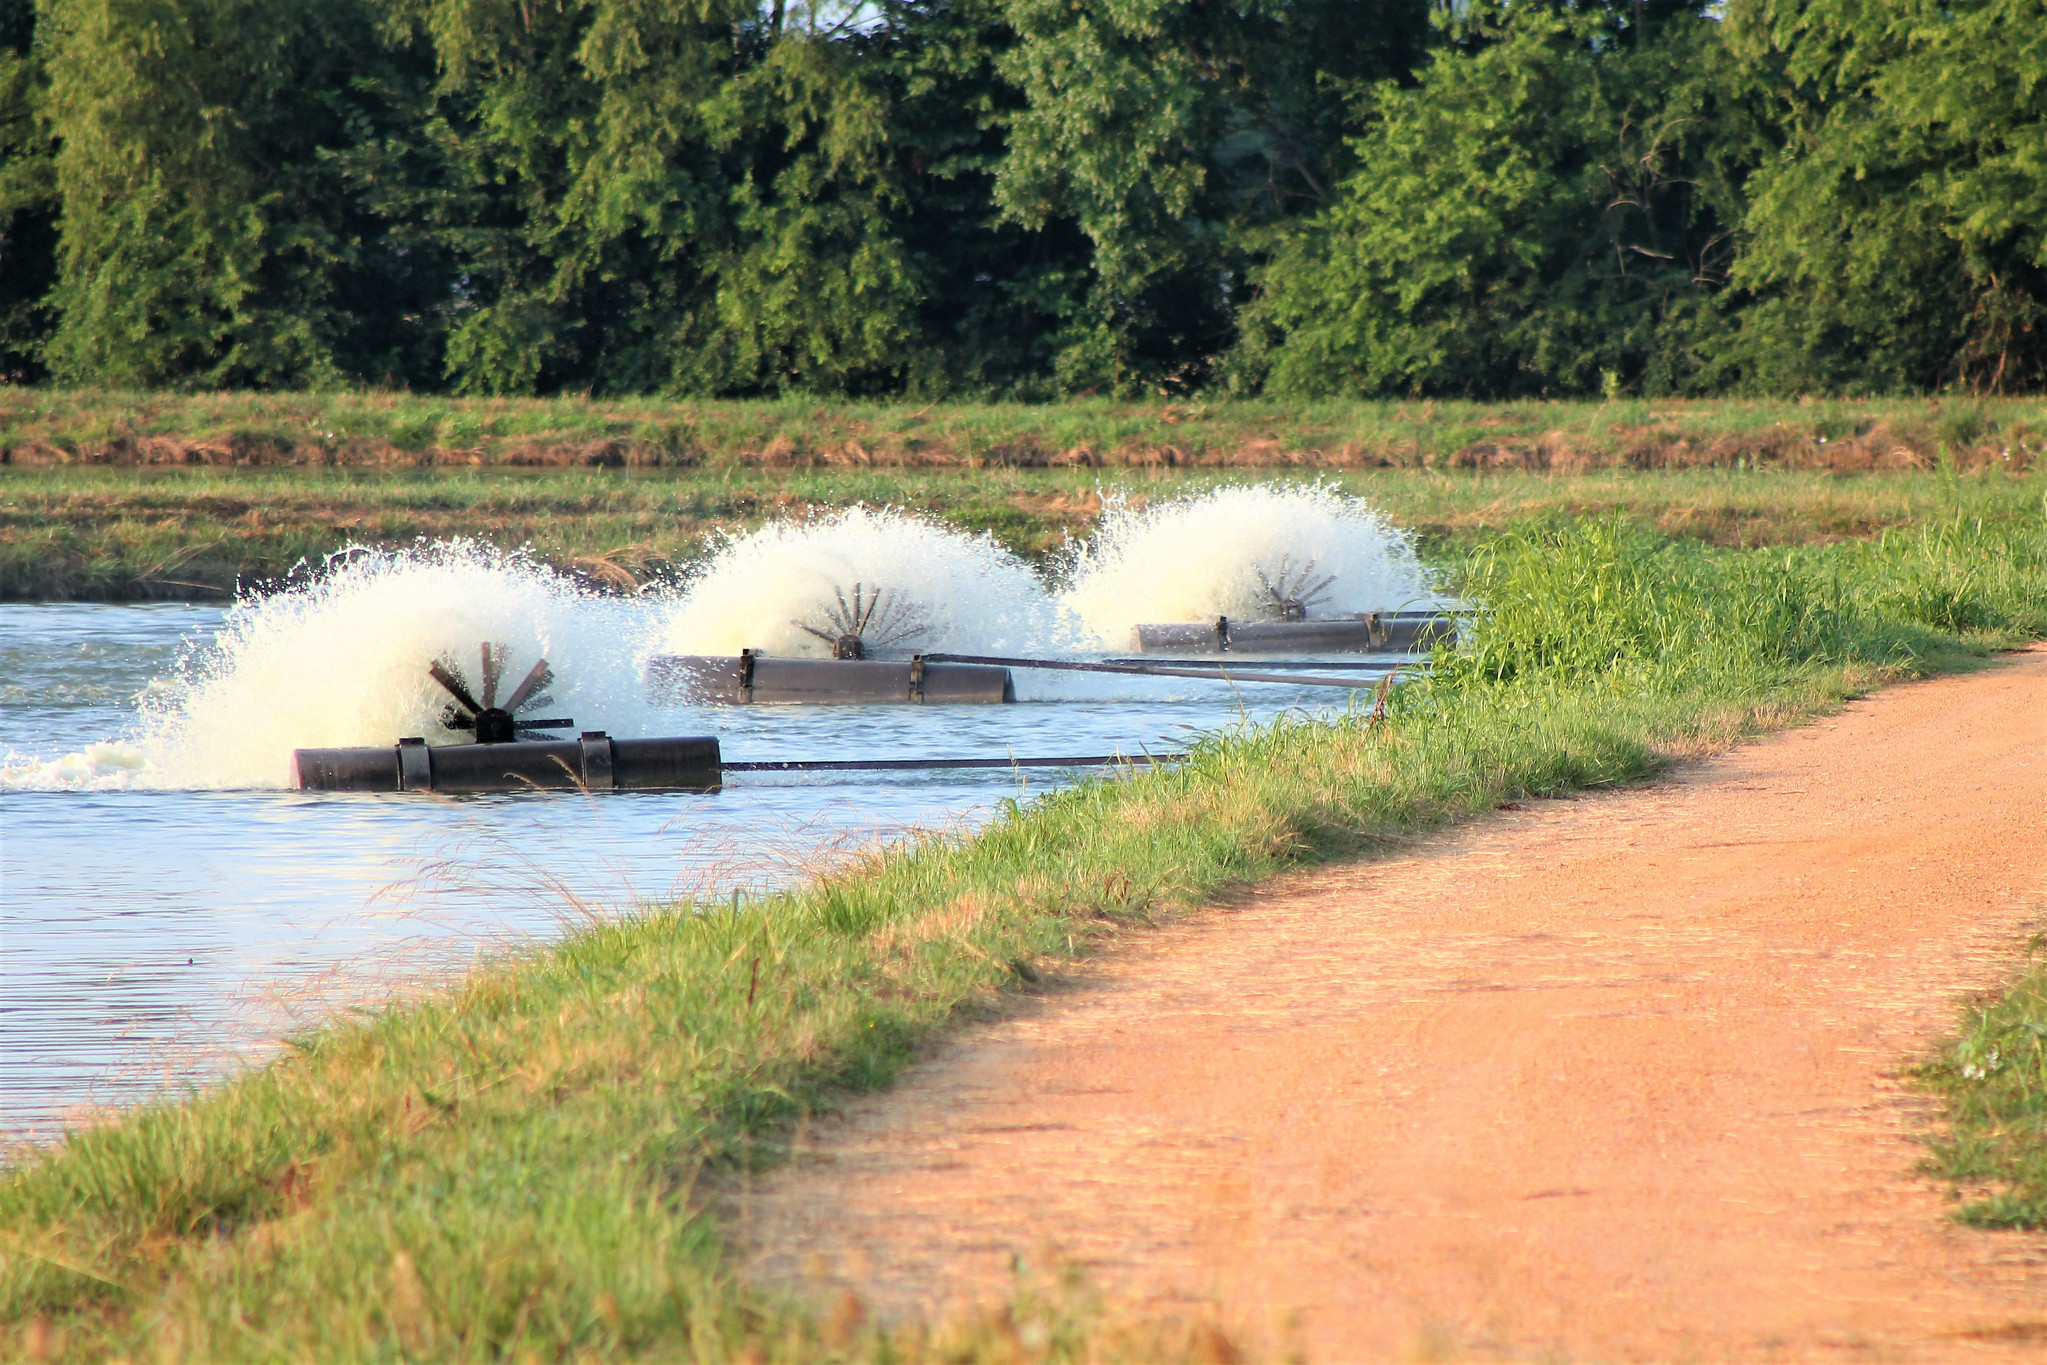 paddlewheel In a catfish farm. Producers eligible for ELAP funds.